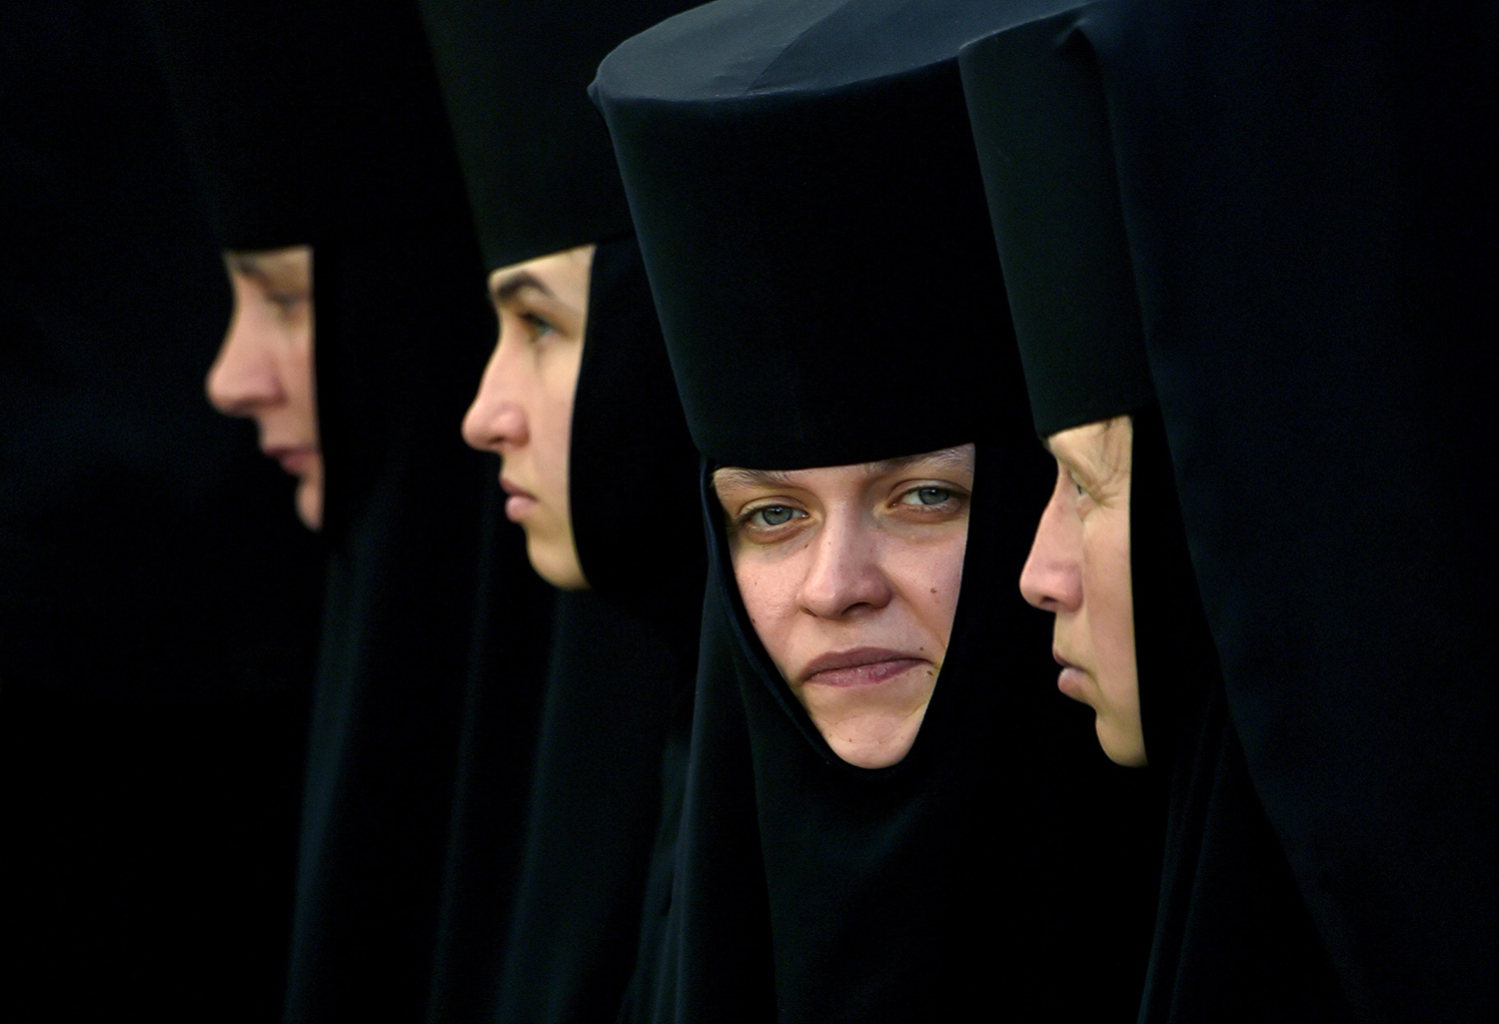 Orthodox nuns take part in a religious procession in Kiev on July 27. SERGEI SUPINSKY/AFP/Getty Images